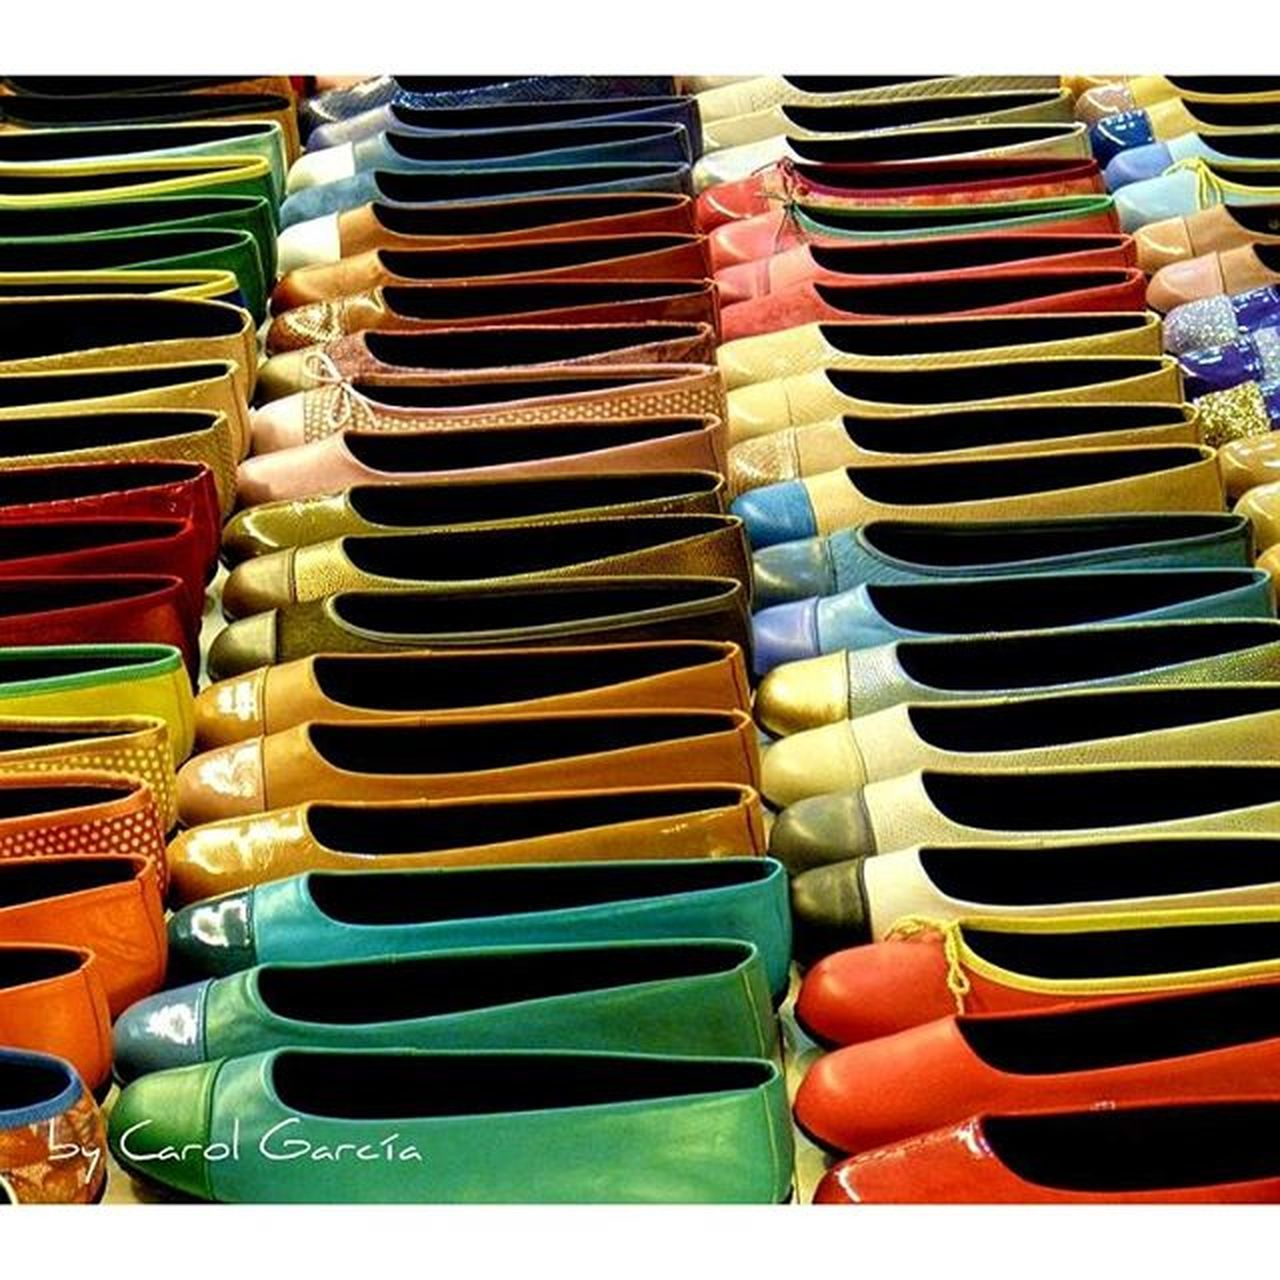 Uno para cada día Chumbea Colors Colores Zapatos Shoes Primerolacomunidad Descubriendoigers Lovecolors Photo Composition SPAIN Varios Diversidad Landscape Total Amazing Beauty Beatiful Complementos Rojo Red Verde Green Amarillo Yellow happycolors coloryourlife coloryourworld total_colors